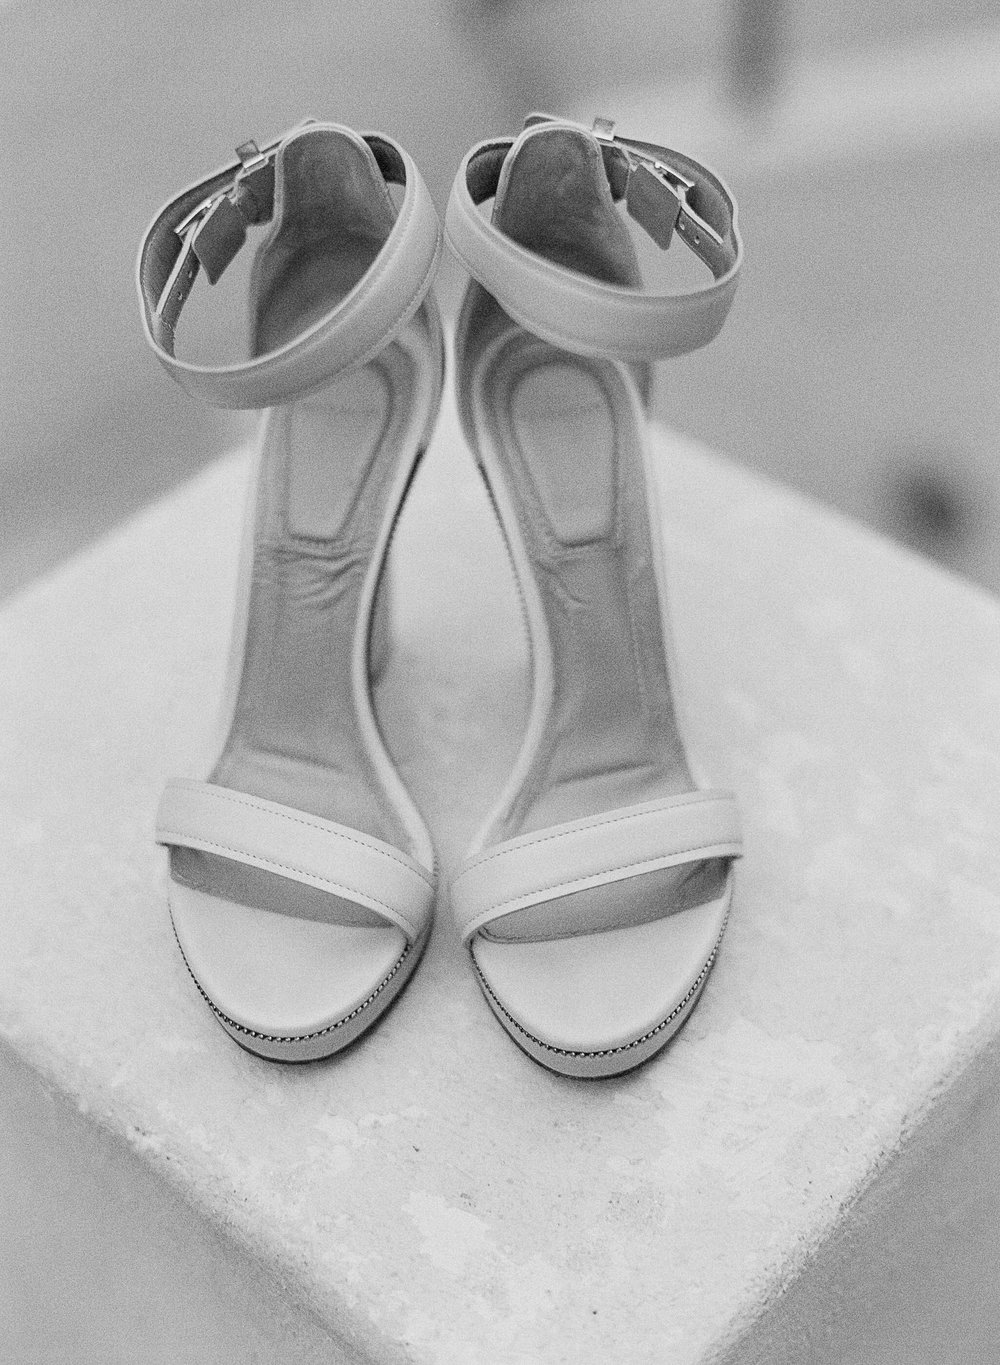 www.santabarbarawedding.com | Villa Verano | Clarissa Koenig Photography | Felici Events | Bride's Shoes